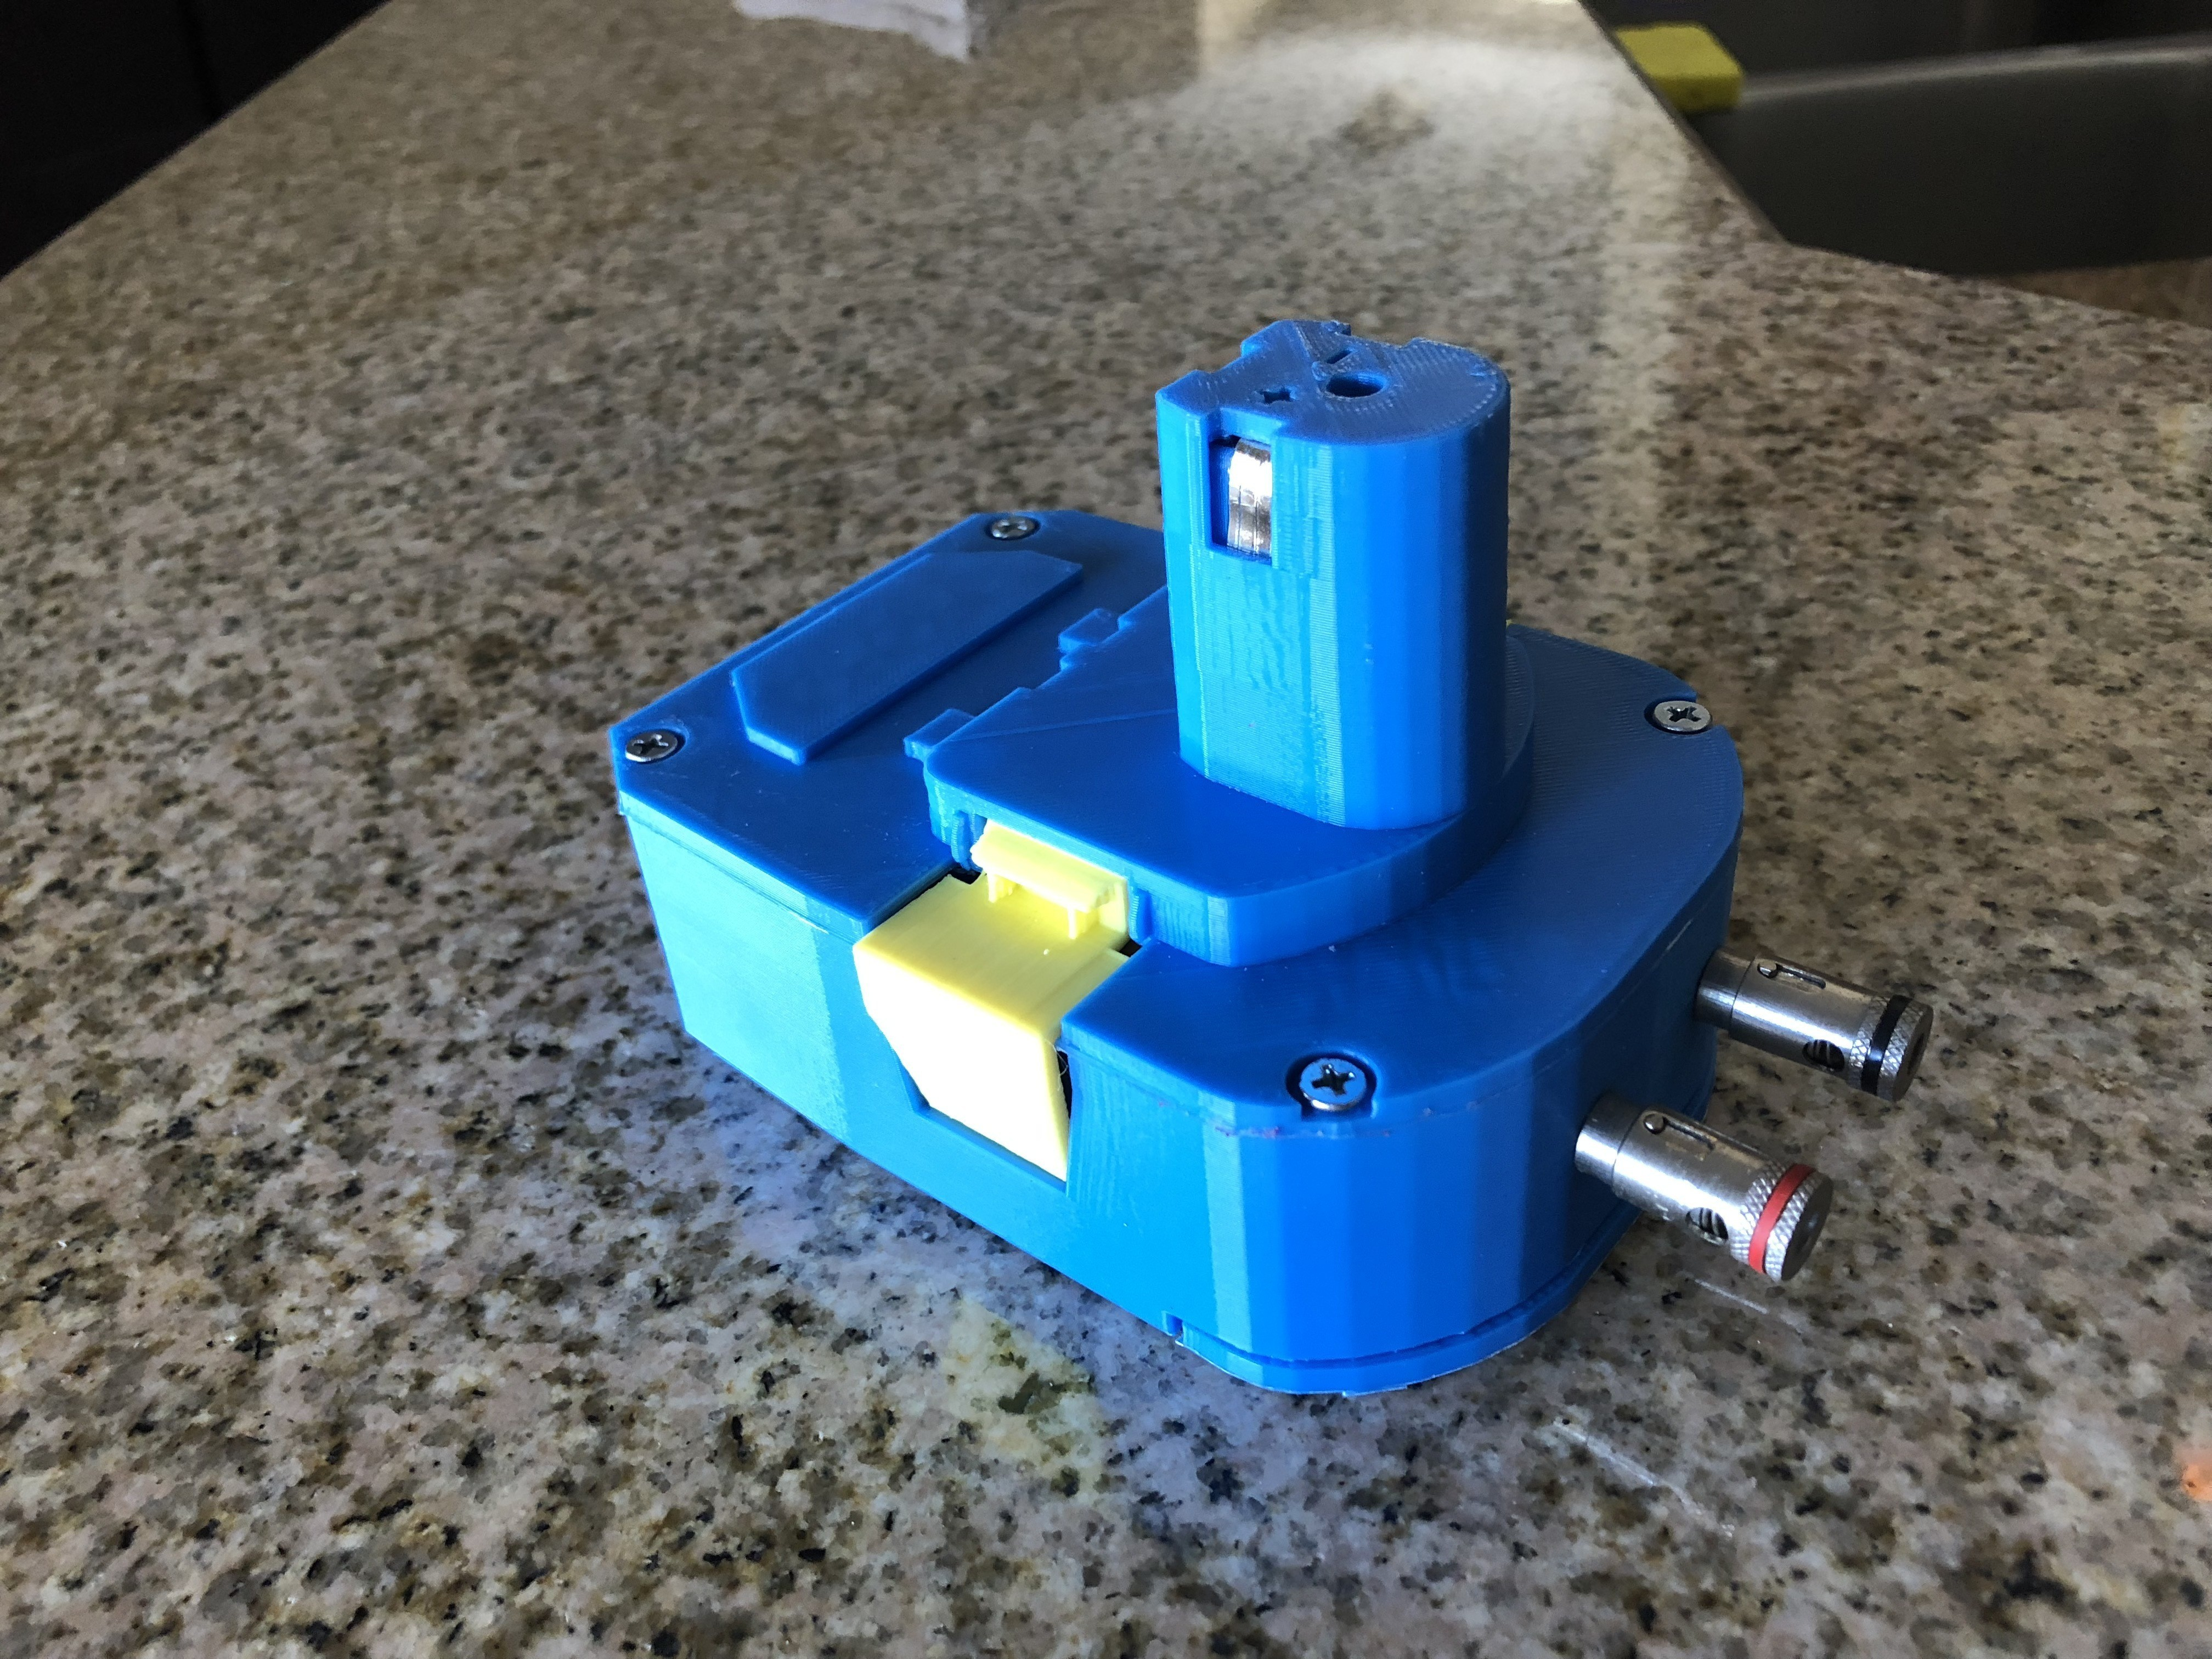 IMG_1695.jpg Download free STL file Ryobi Battery Pack to AC Adapter • 3D print object, MeesterEduard